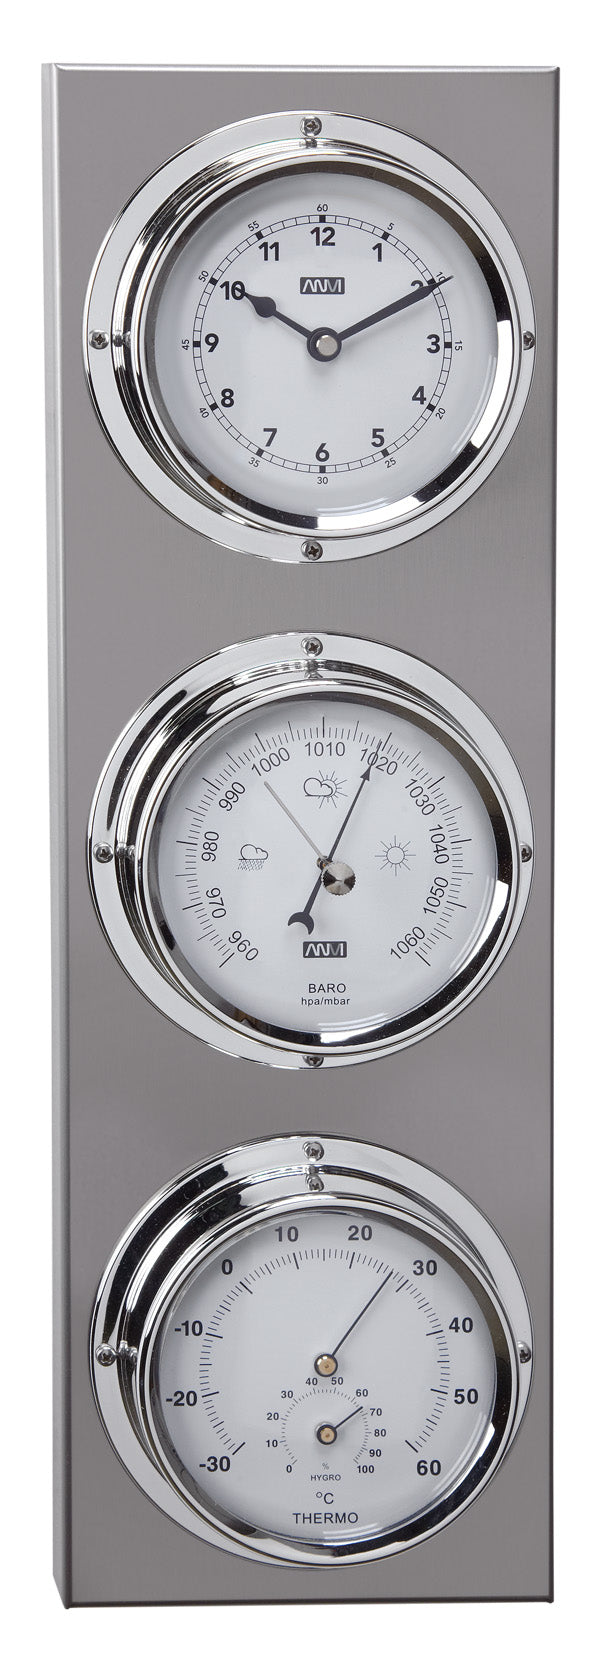 ANVI Barometer, Thermometer, Hygrometer, Clock - Stainless Steel - Rectangular (Coastal only)